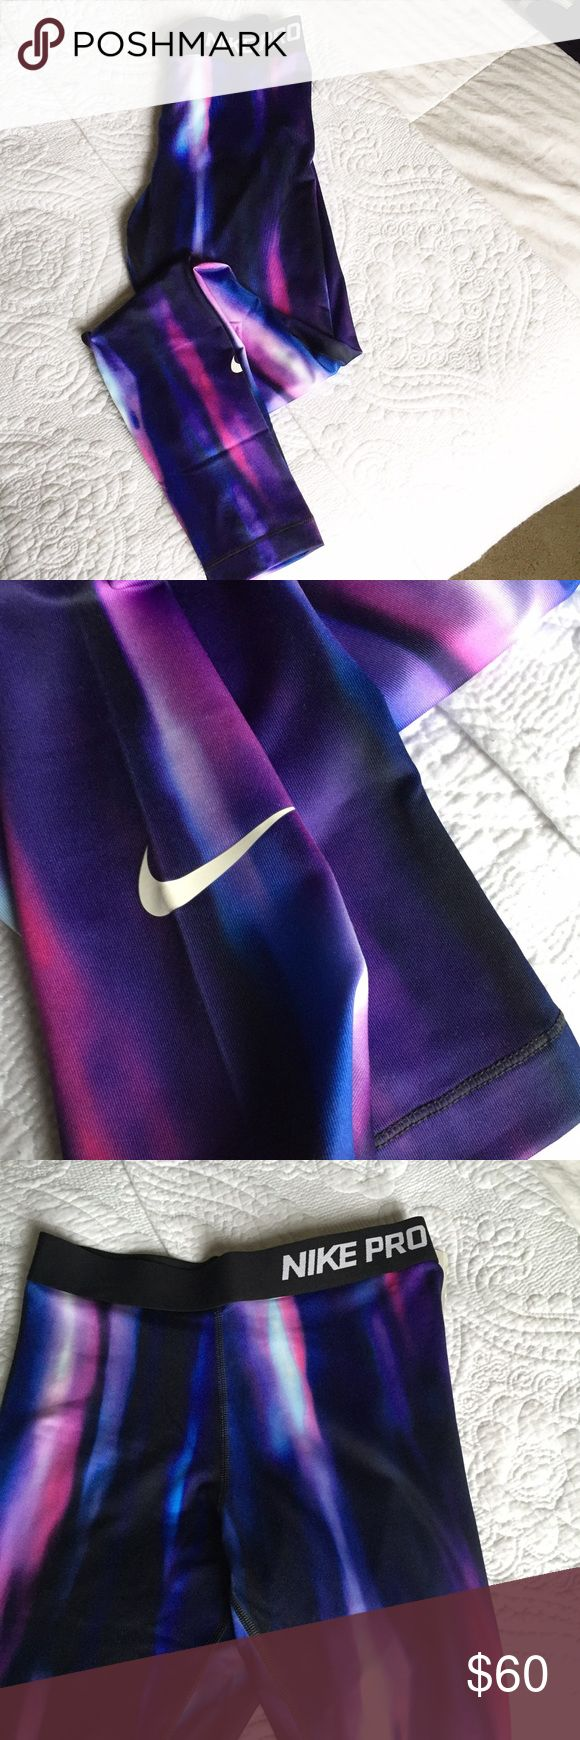 Nike Pro Leggings *Only Sz small left* Such a unique pair of running pants to wear year round! Size medium sold! Size small is pending! If listing is active, pants are still available!! Nike Pants